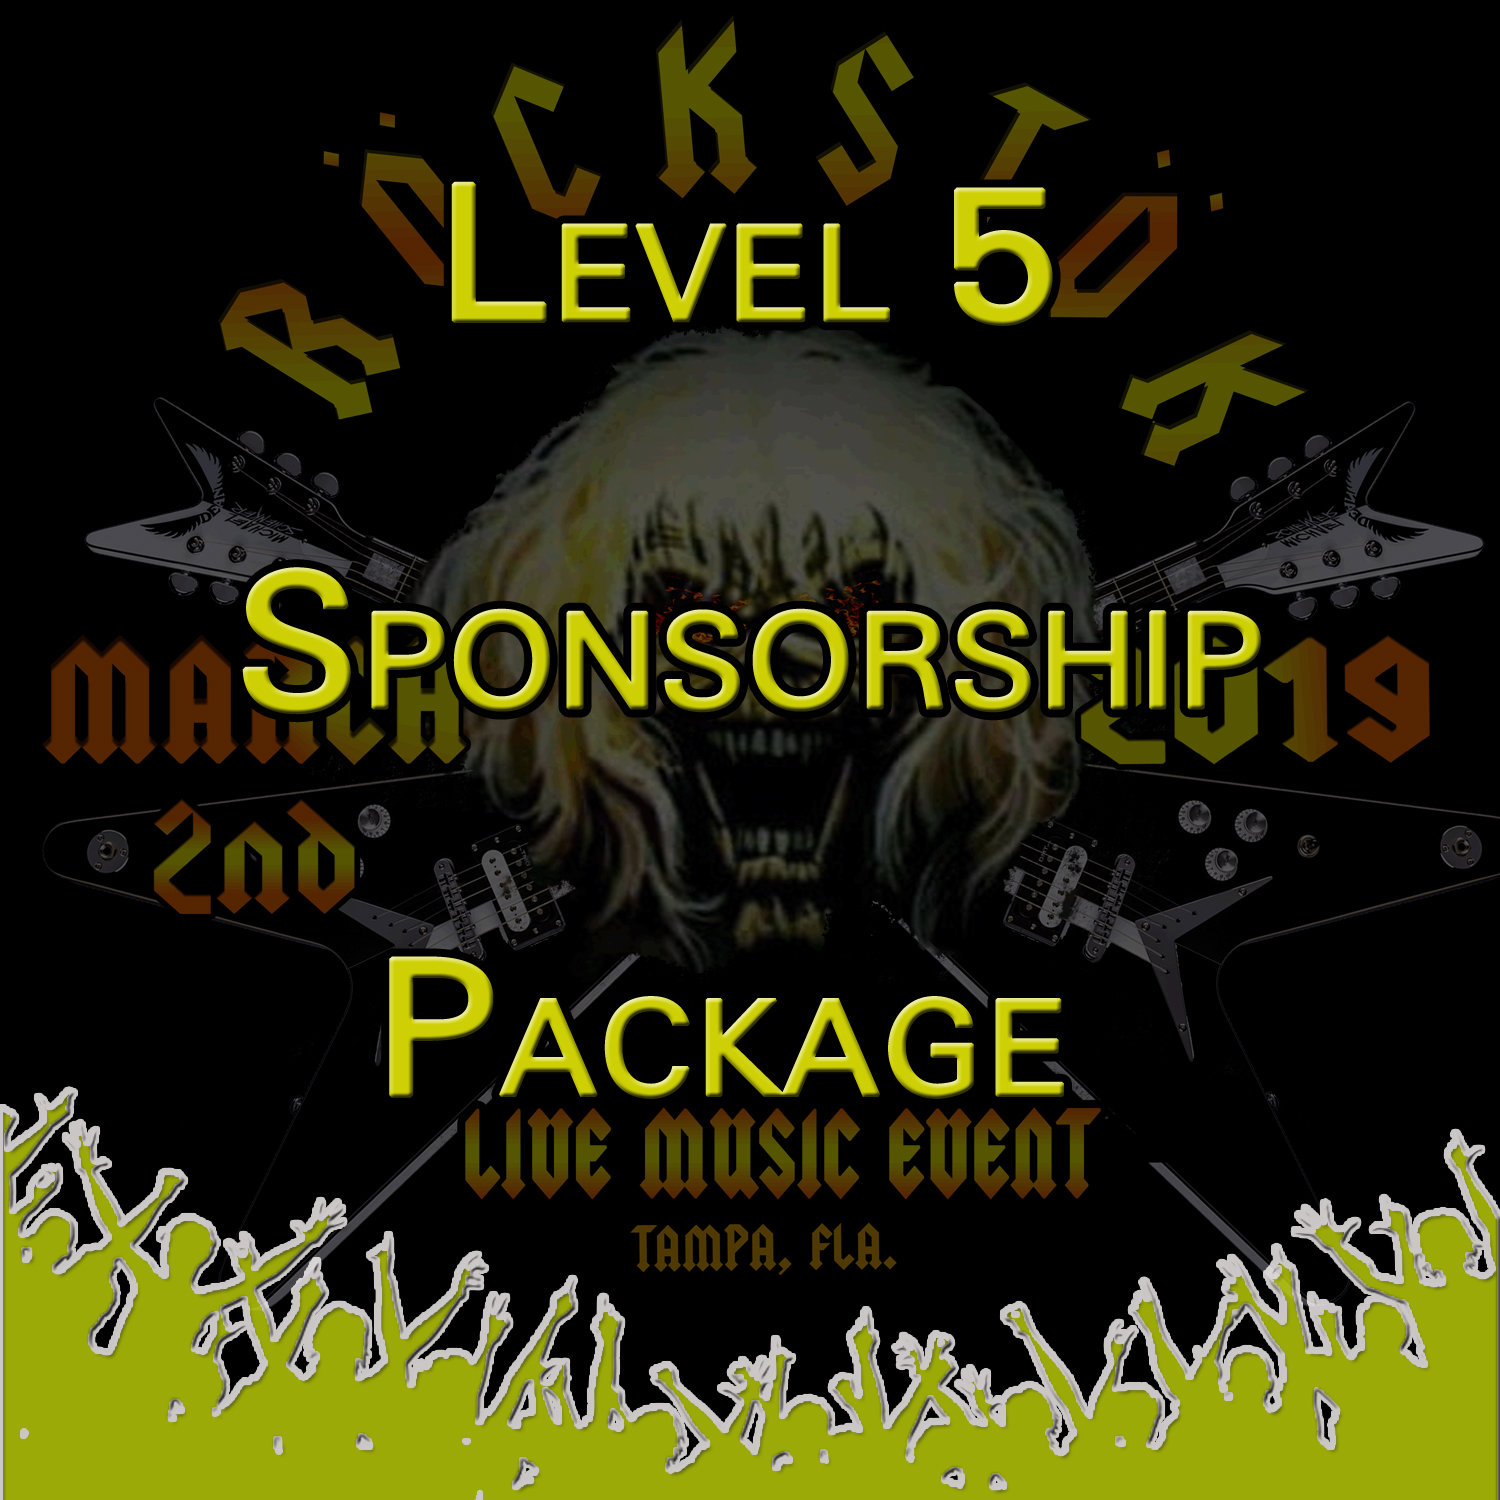 Level 5 Sponsorship Package